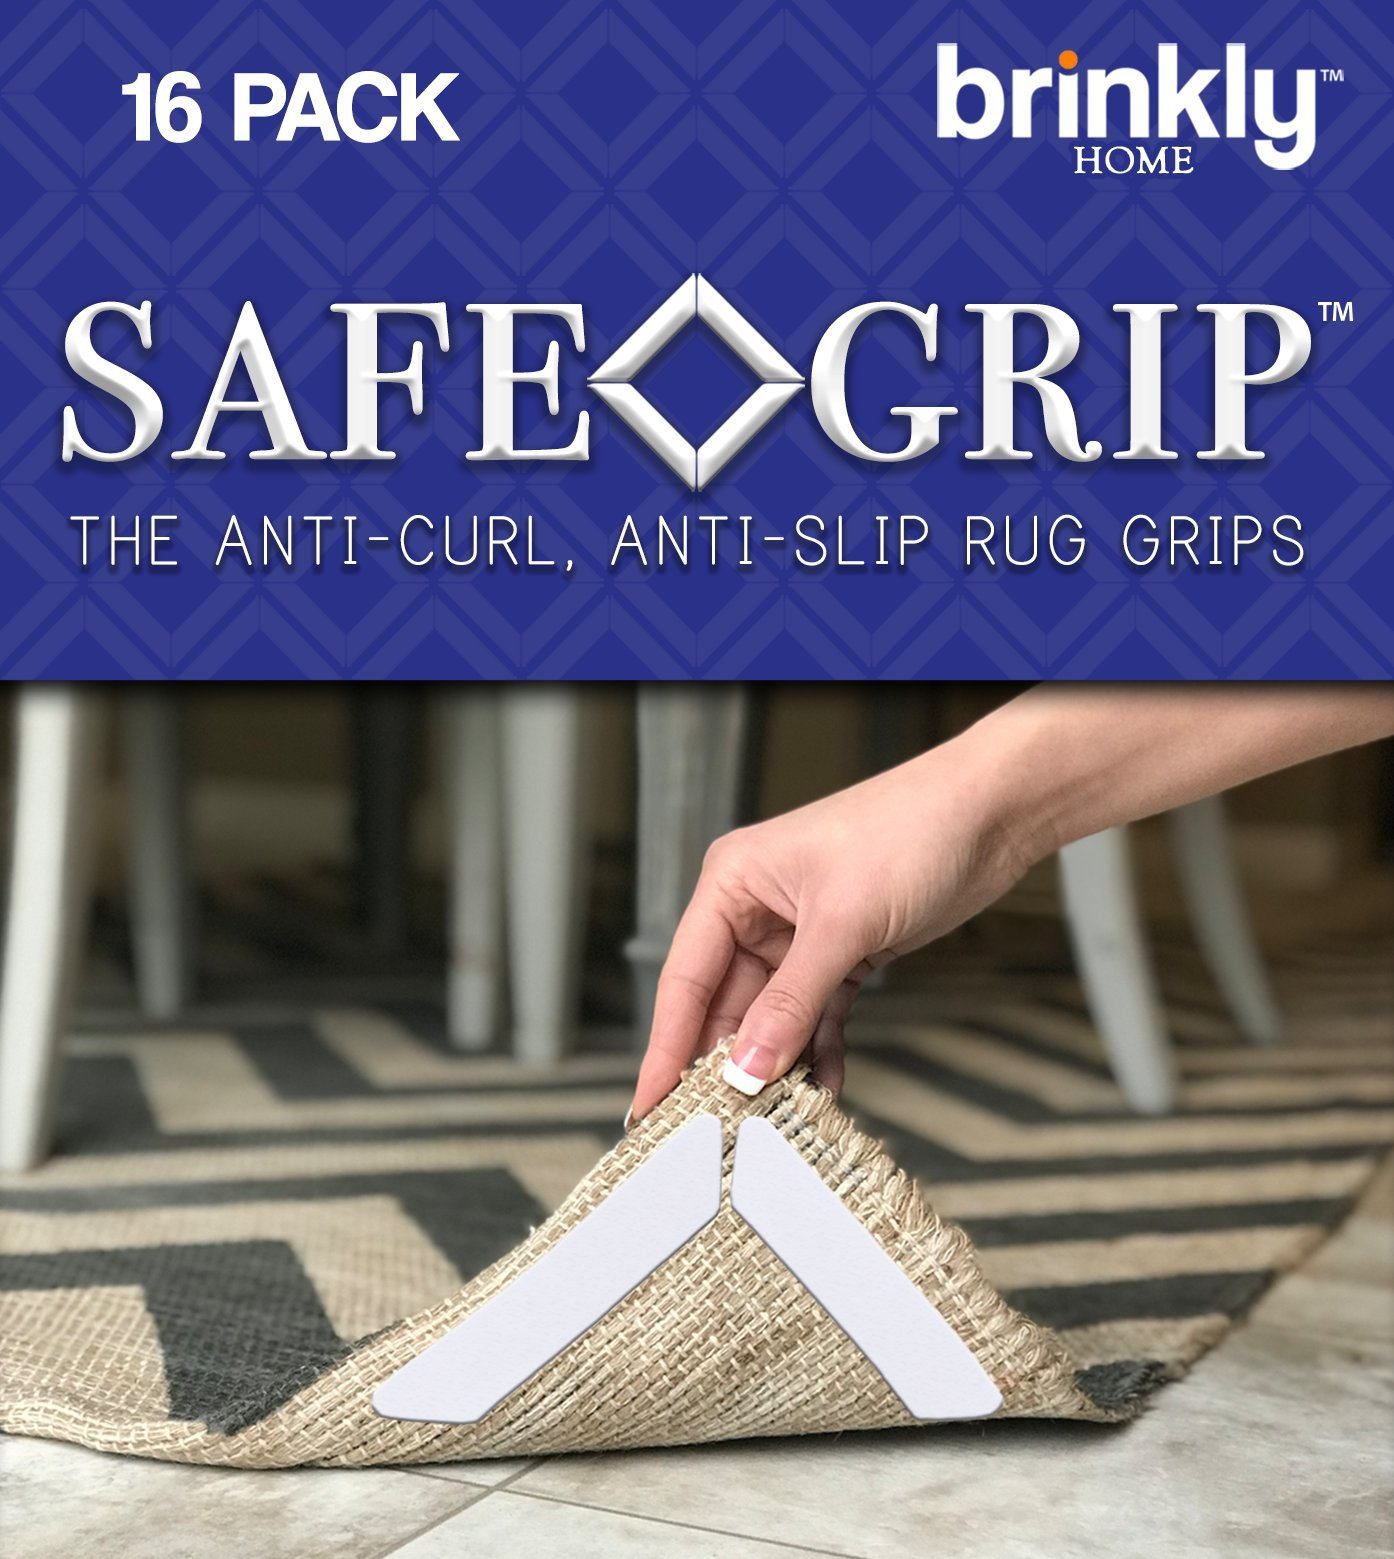 Brinkly Safe Grip Premium Rug Gripper 16PCS | The Anti-Curling Carpet Gripper Keeps Your Area Rugs in Place and Corners Flat | Best Anti-Slip Rug Pads w/ Renewable Gripper Tape for All Hard Floors by Brinkly